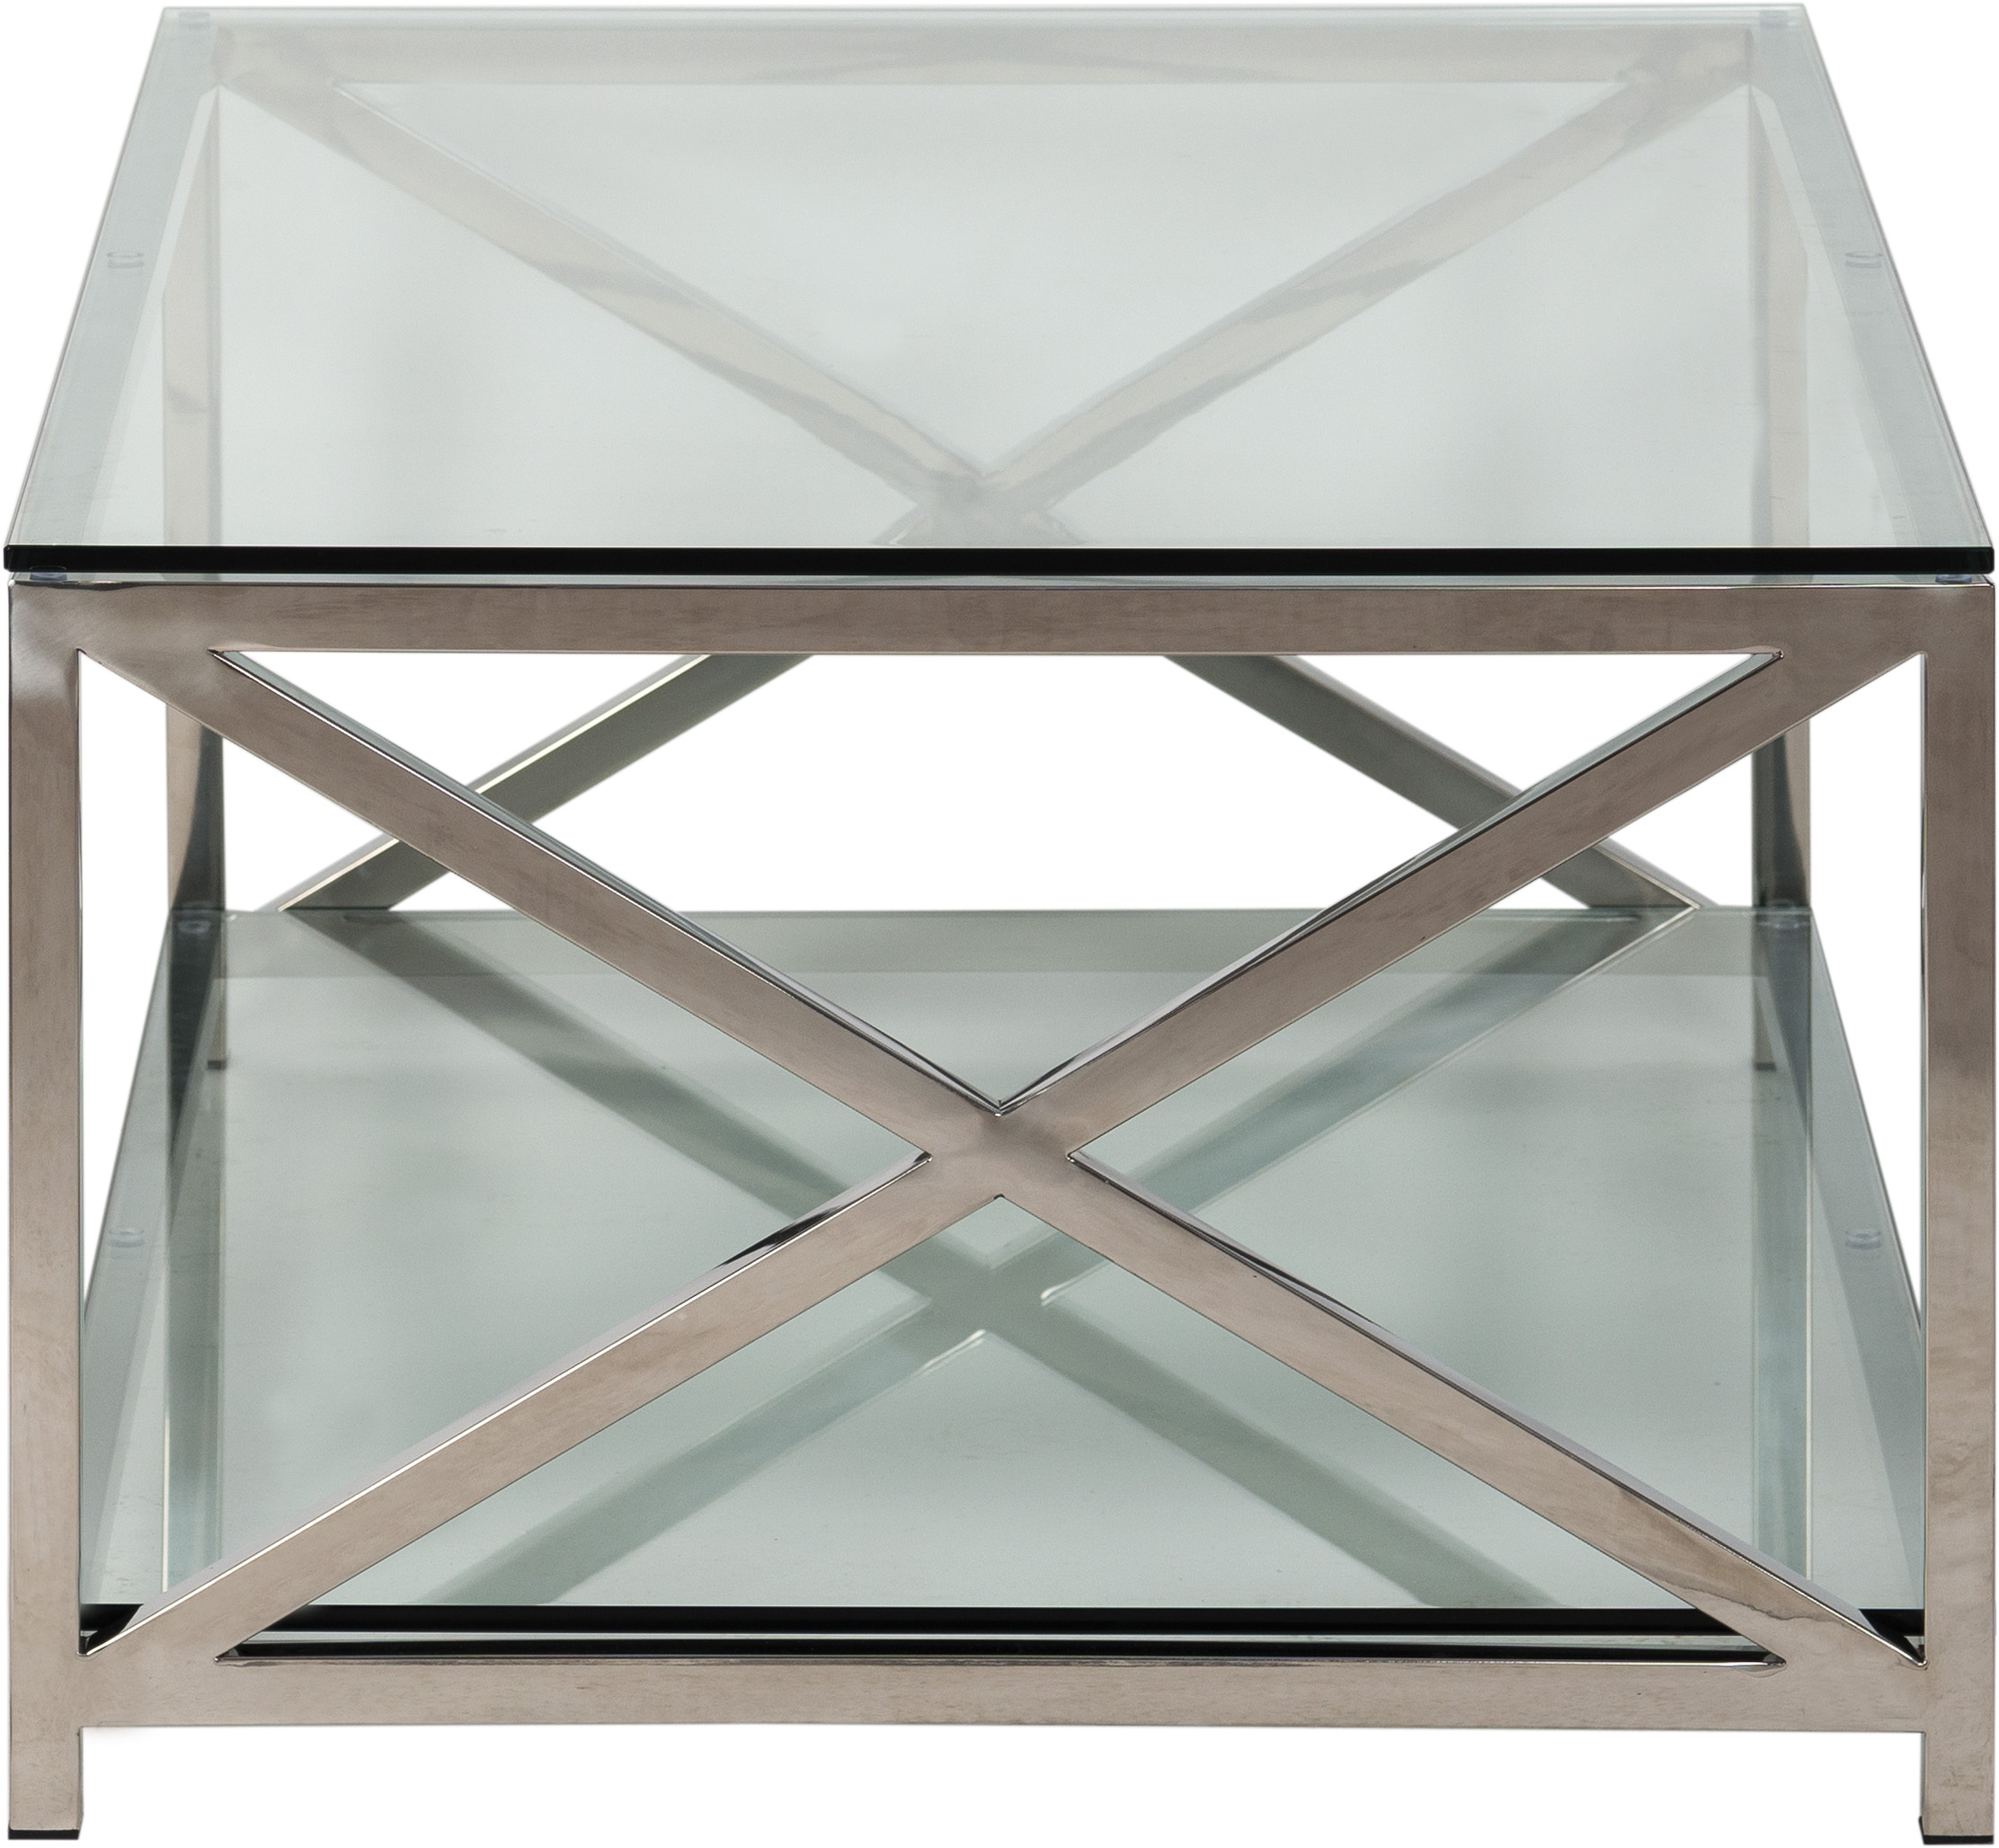 Contemporary Glass Coffee Tables Uk: Modern Glass Coffee Table UK